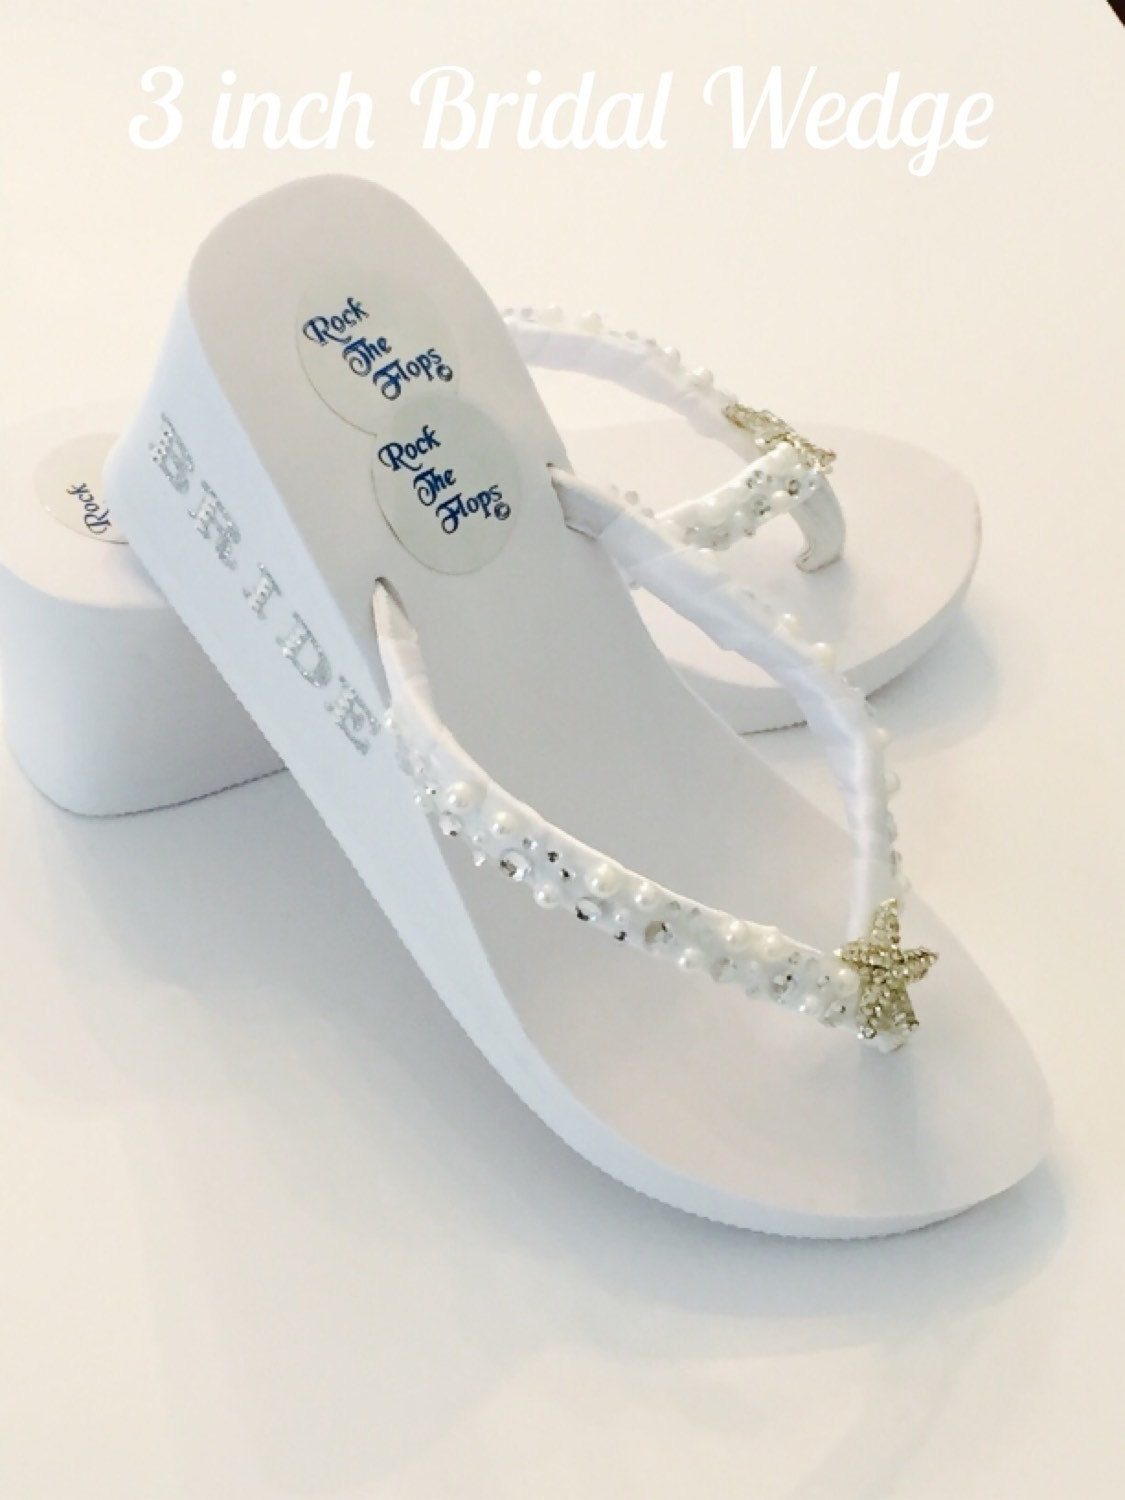 3 INCH BRIDAL WEDGES.White Wedding Flip Flops. Bridal